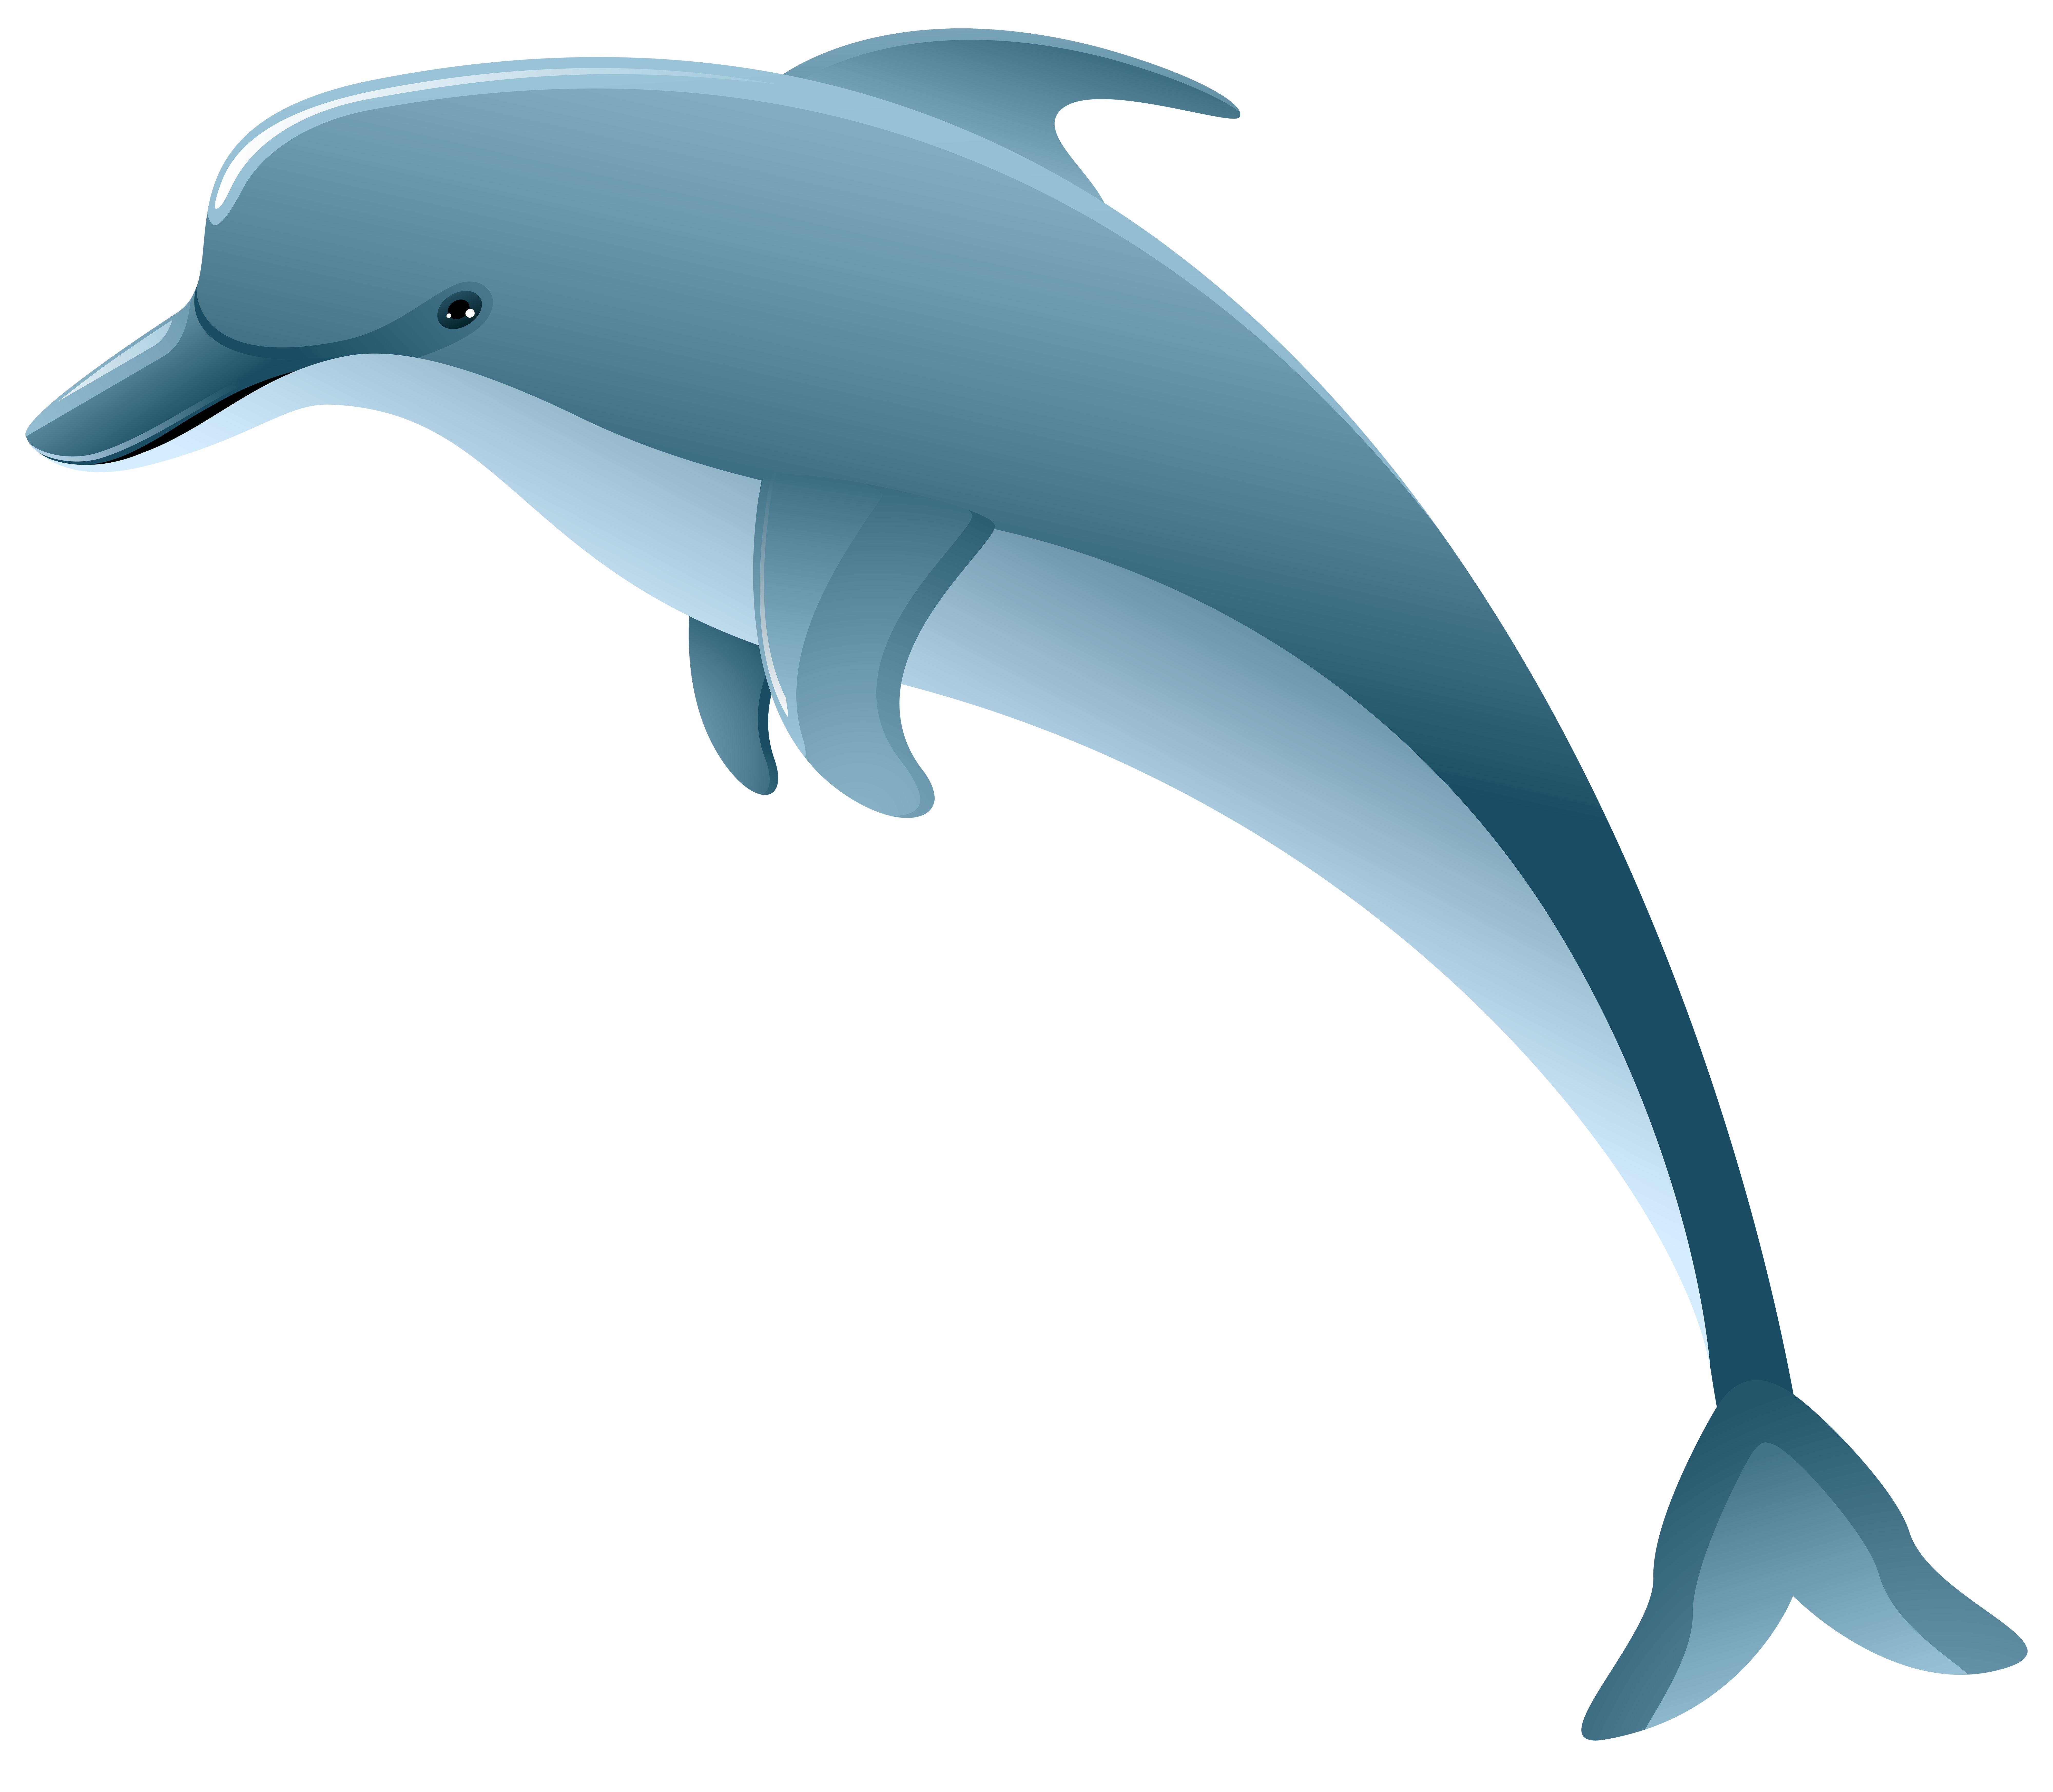 Dolphin clipart dolphin tail. Realistic free pencil and